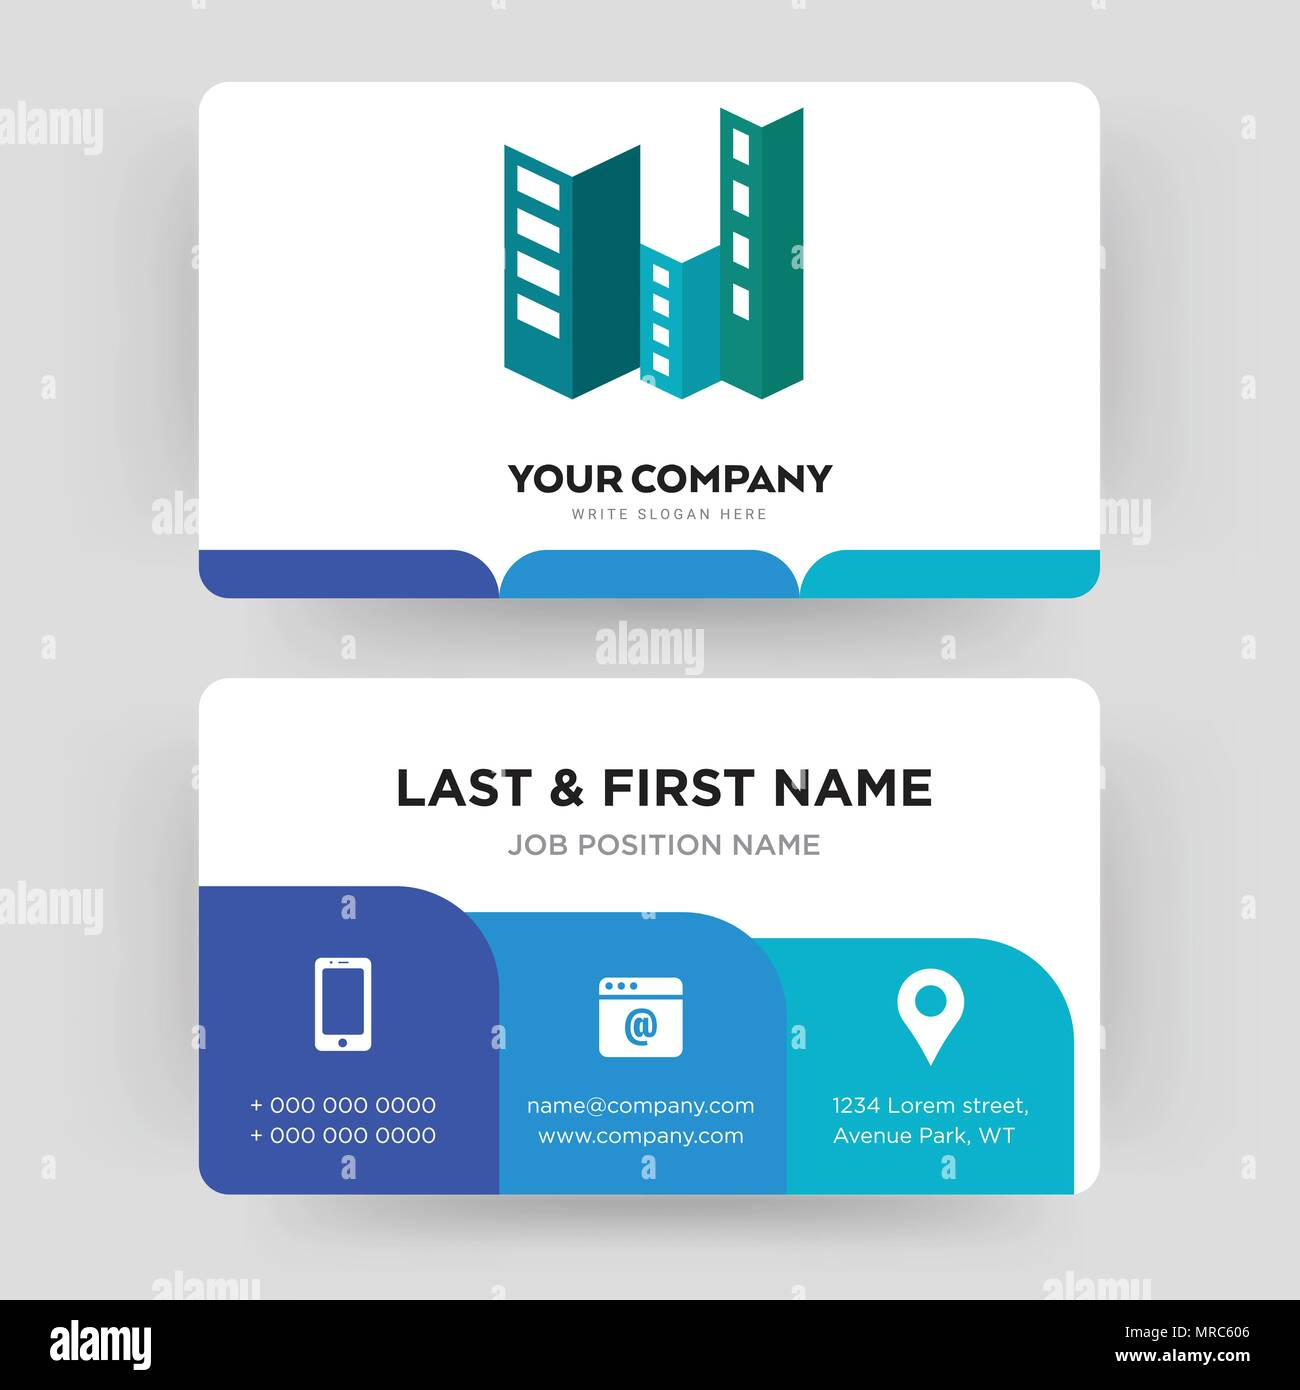 Construction business card design template visiting for your construction business card design template visiting for your company modern creative and clean identity card vector accmission Image collections